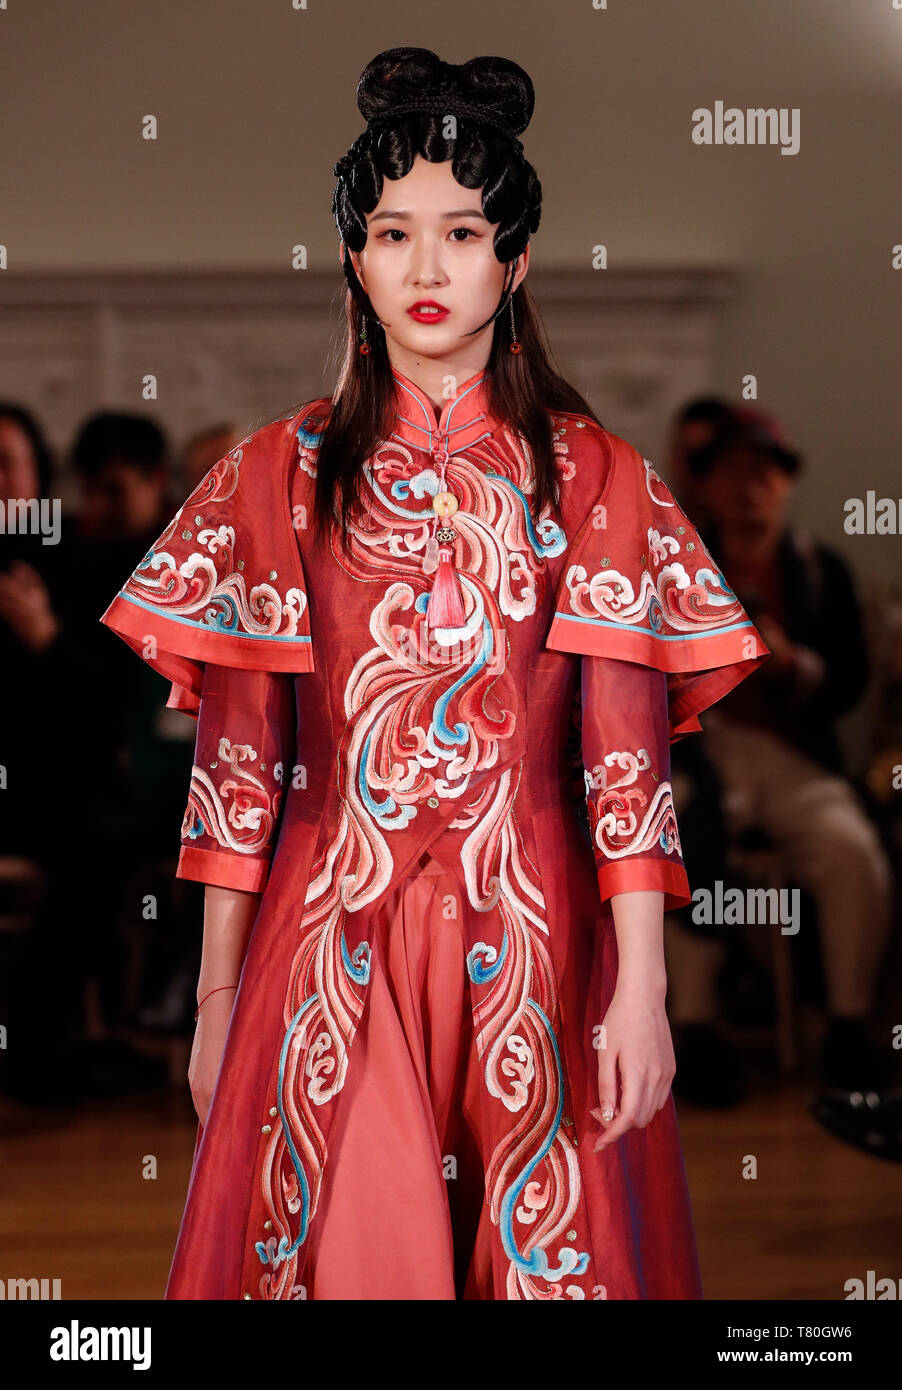 London, UK. 8th May, 2019. A model walks the runway during the Zhejiang Traditional Craft Innovation Exhibition at Asia House in London, Britain on May 8, 2019. Organized by the Zhejiang Provincial Department of Culture and Tourism, the exhibition is a part of the fifth London Crafts Week and will last for four days. Credit: Han Yan/Xinhua/Alamy Live News Stock Photo